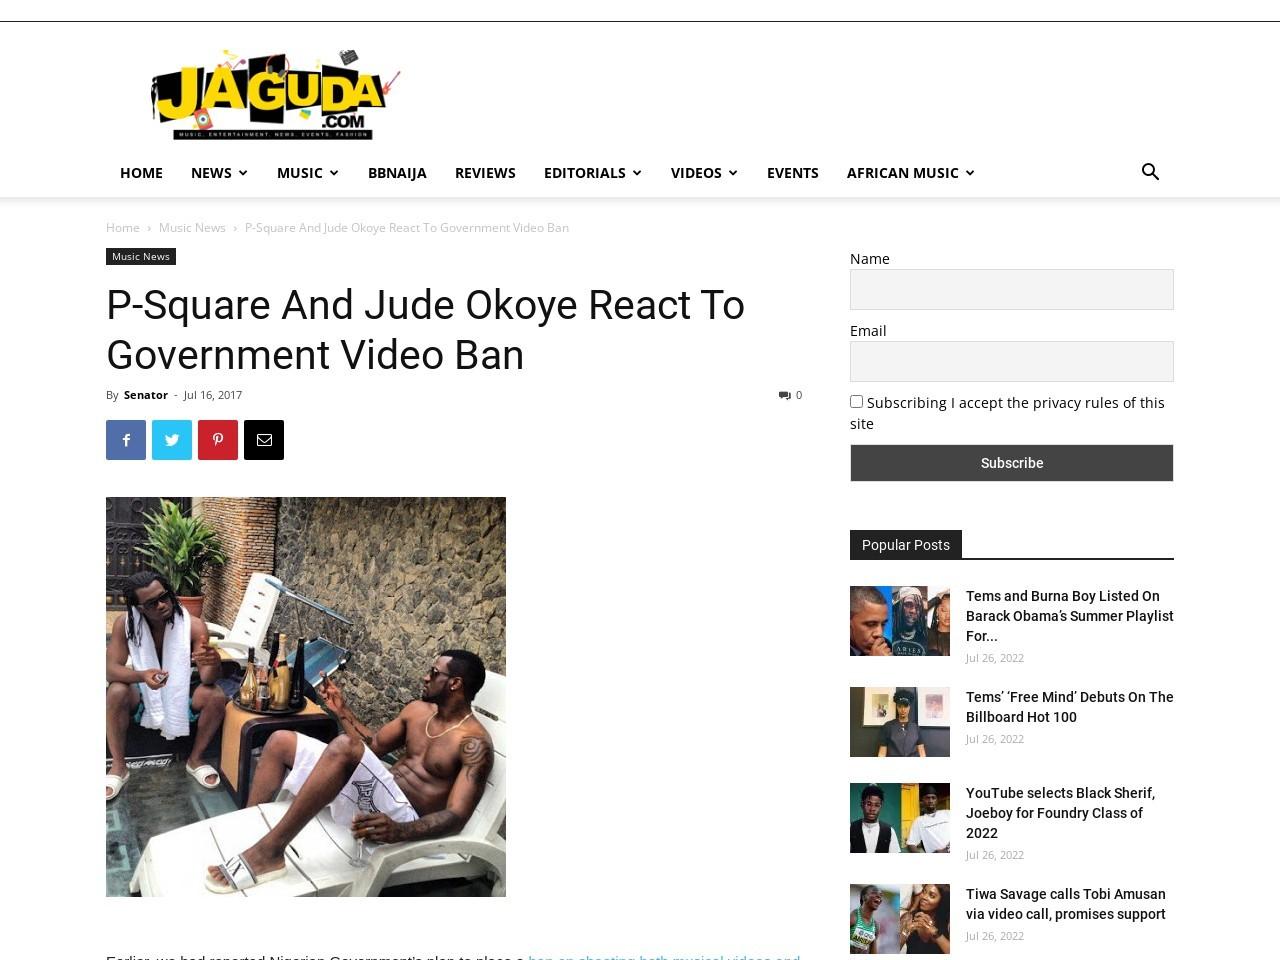 P-Square And Jude Okoye React To Government Video Ban